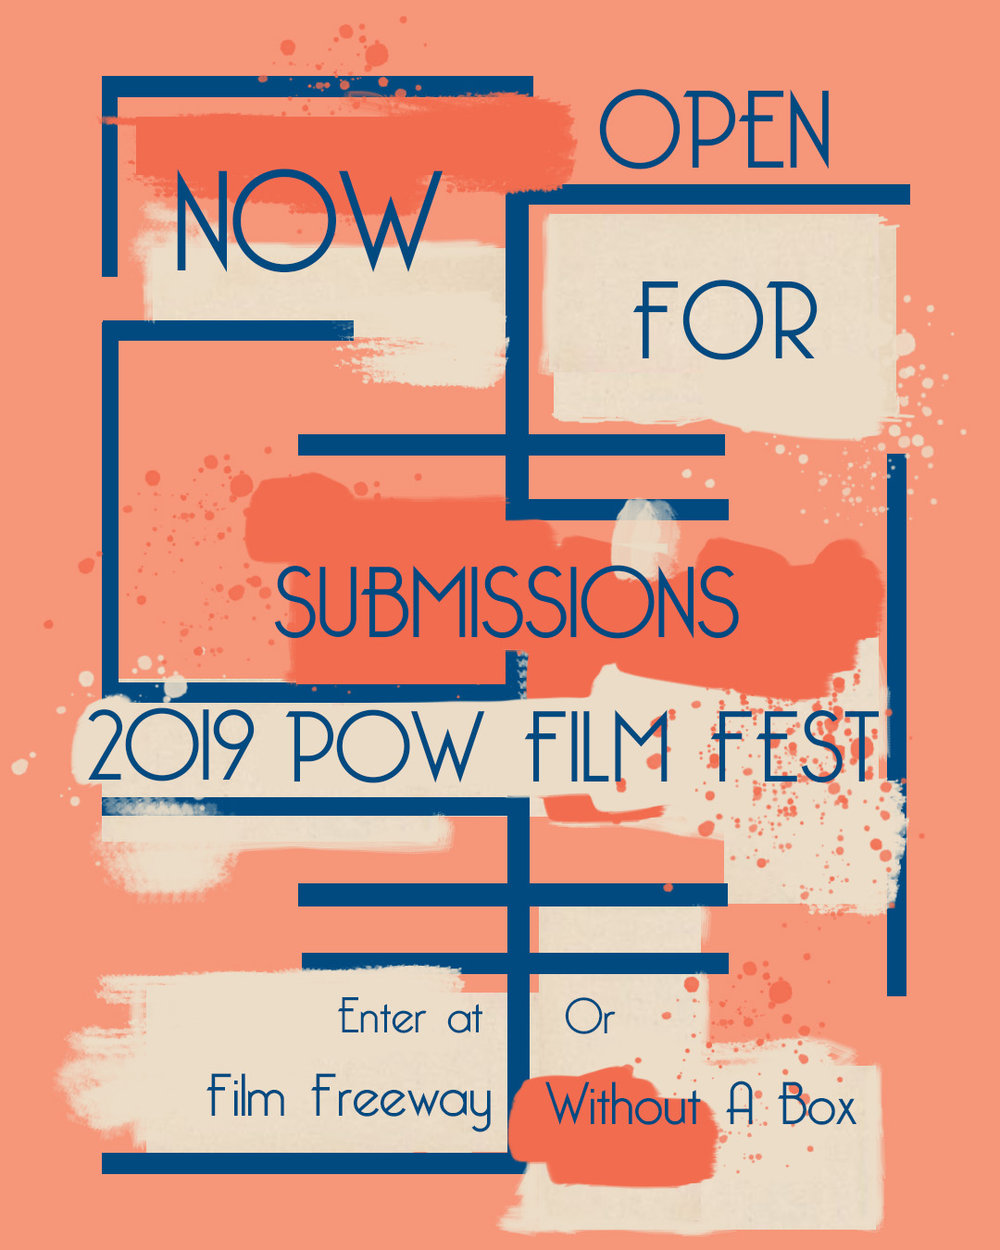 SUBMIT YOUR FILM FOR our 2019 Festival - Use one of our two partners to submit your film for consideration for 2019 POW Film Fest. Please read our guidelines before submitting.